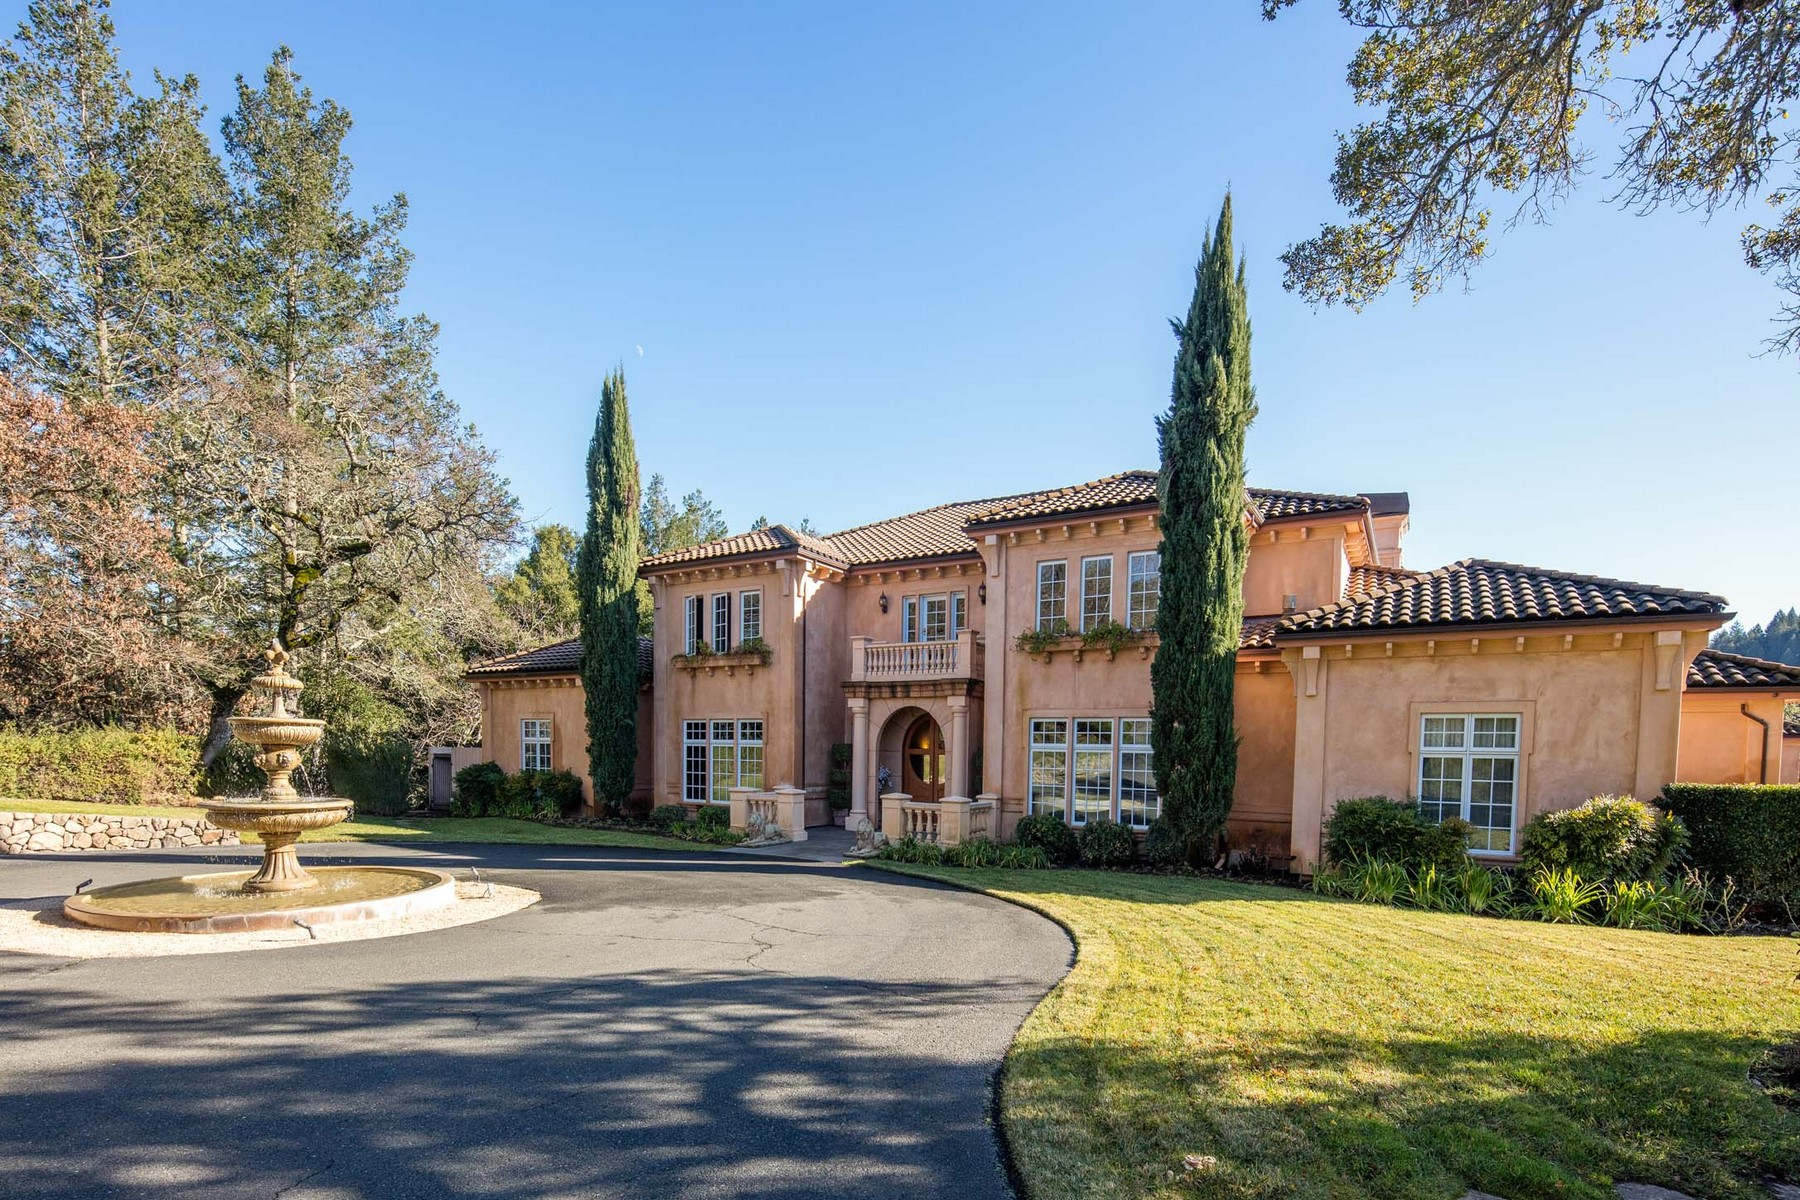 Single Family Home for Sale at Majestic 40 Acre Vineyard Estate 2910 Spring Mountain Road St. Helena, 94574 United States